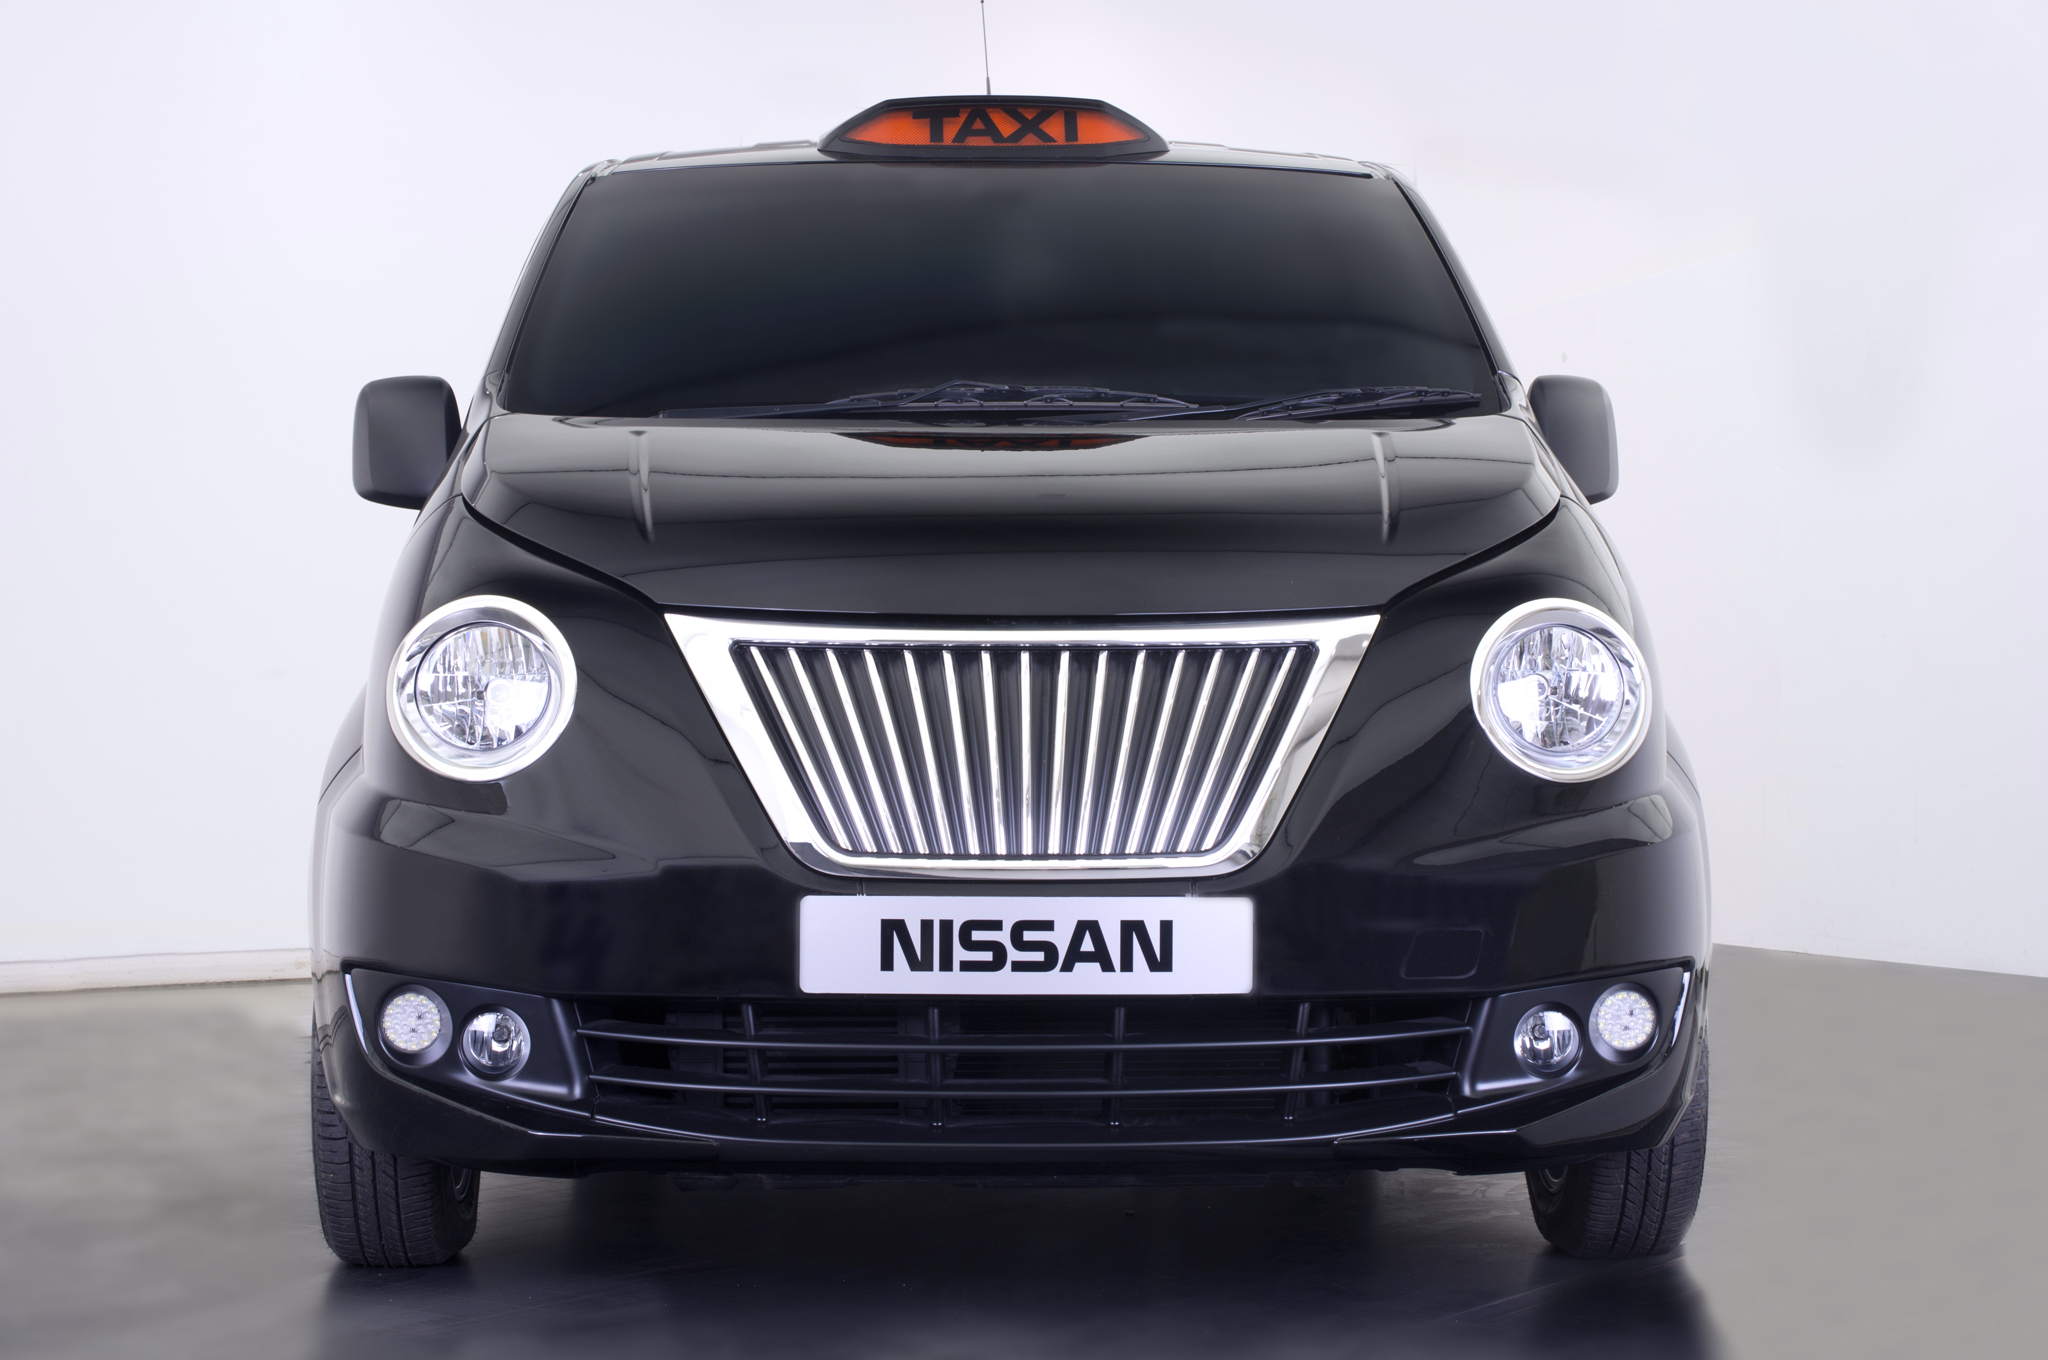 Nissan NV200 Taxi for London Revealed - Better than NYC's?